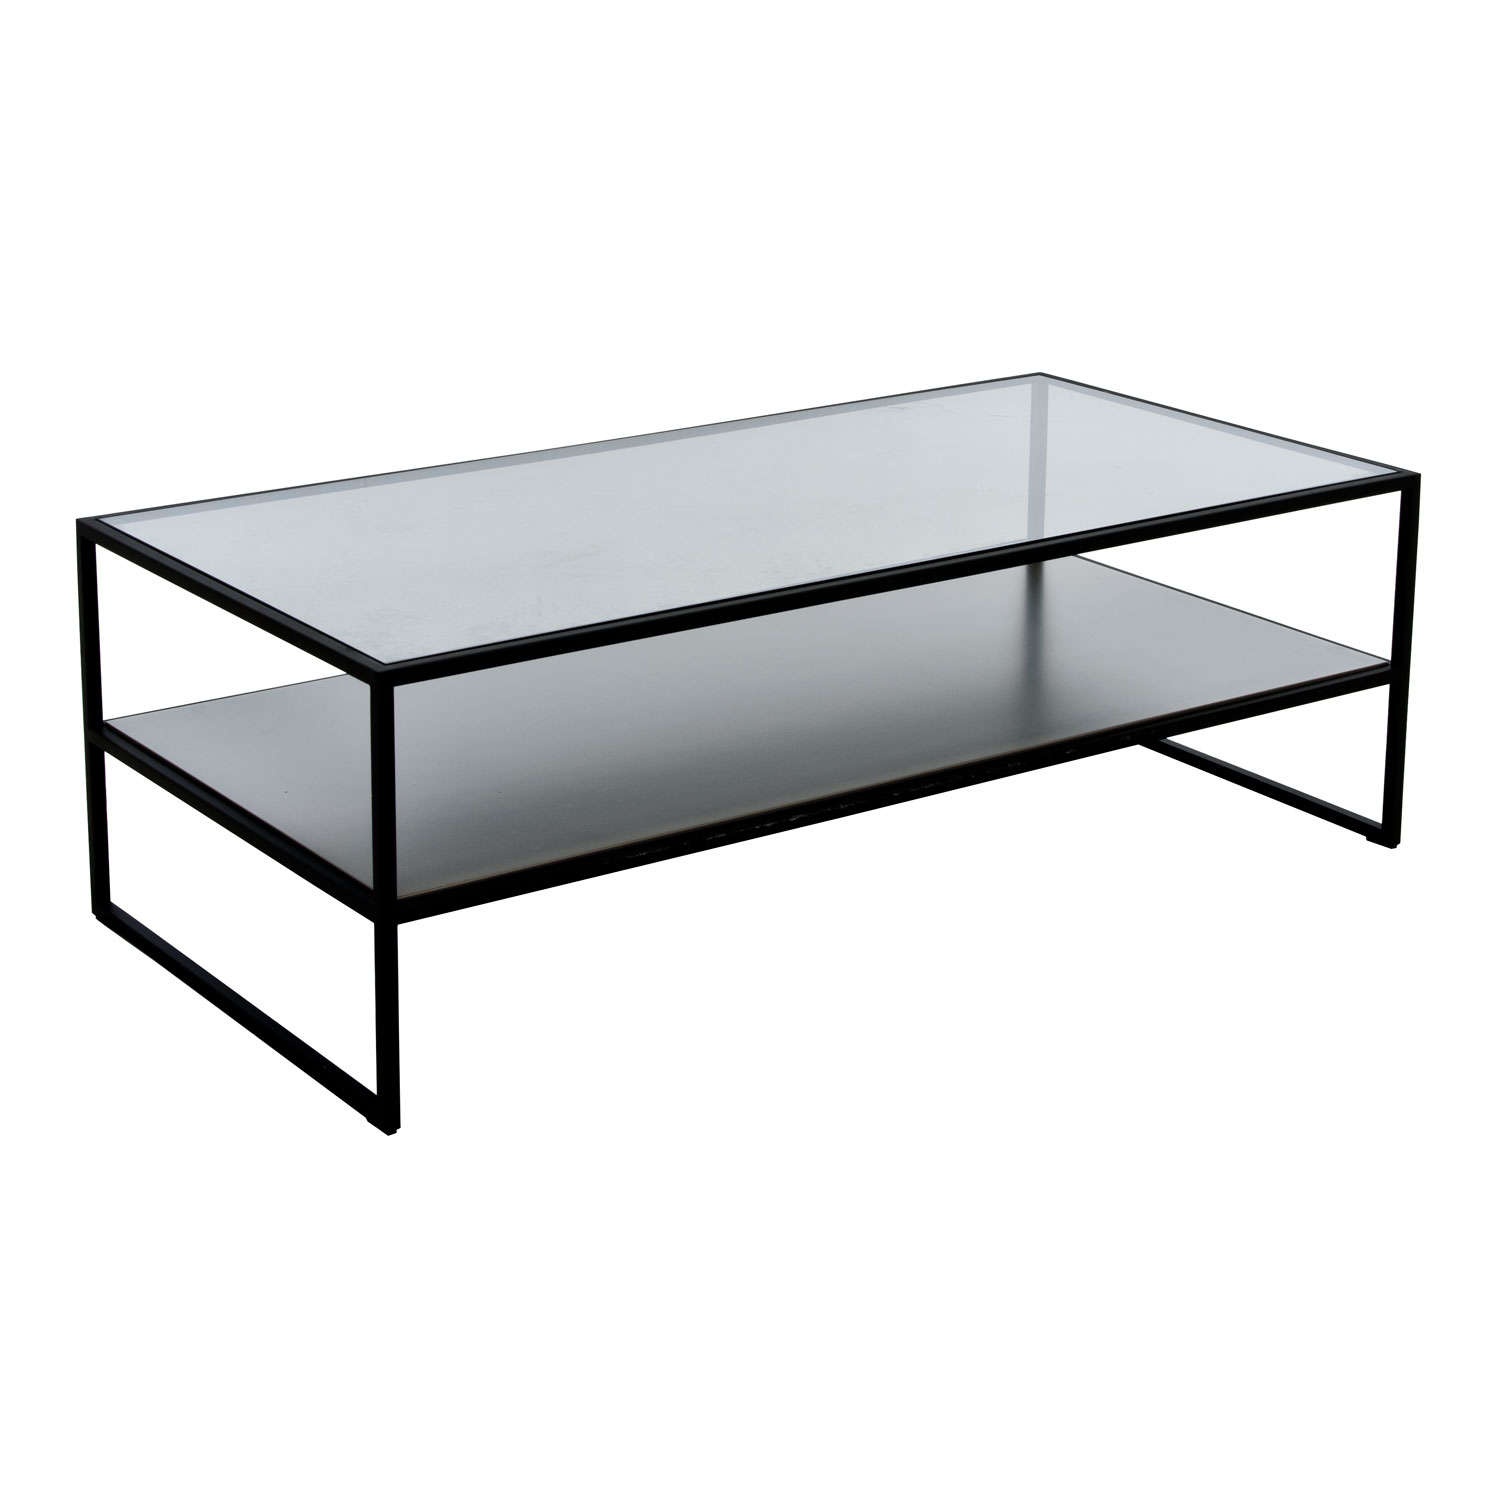 Image of Casa Tribeca Coffee Table With Shelf